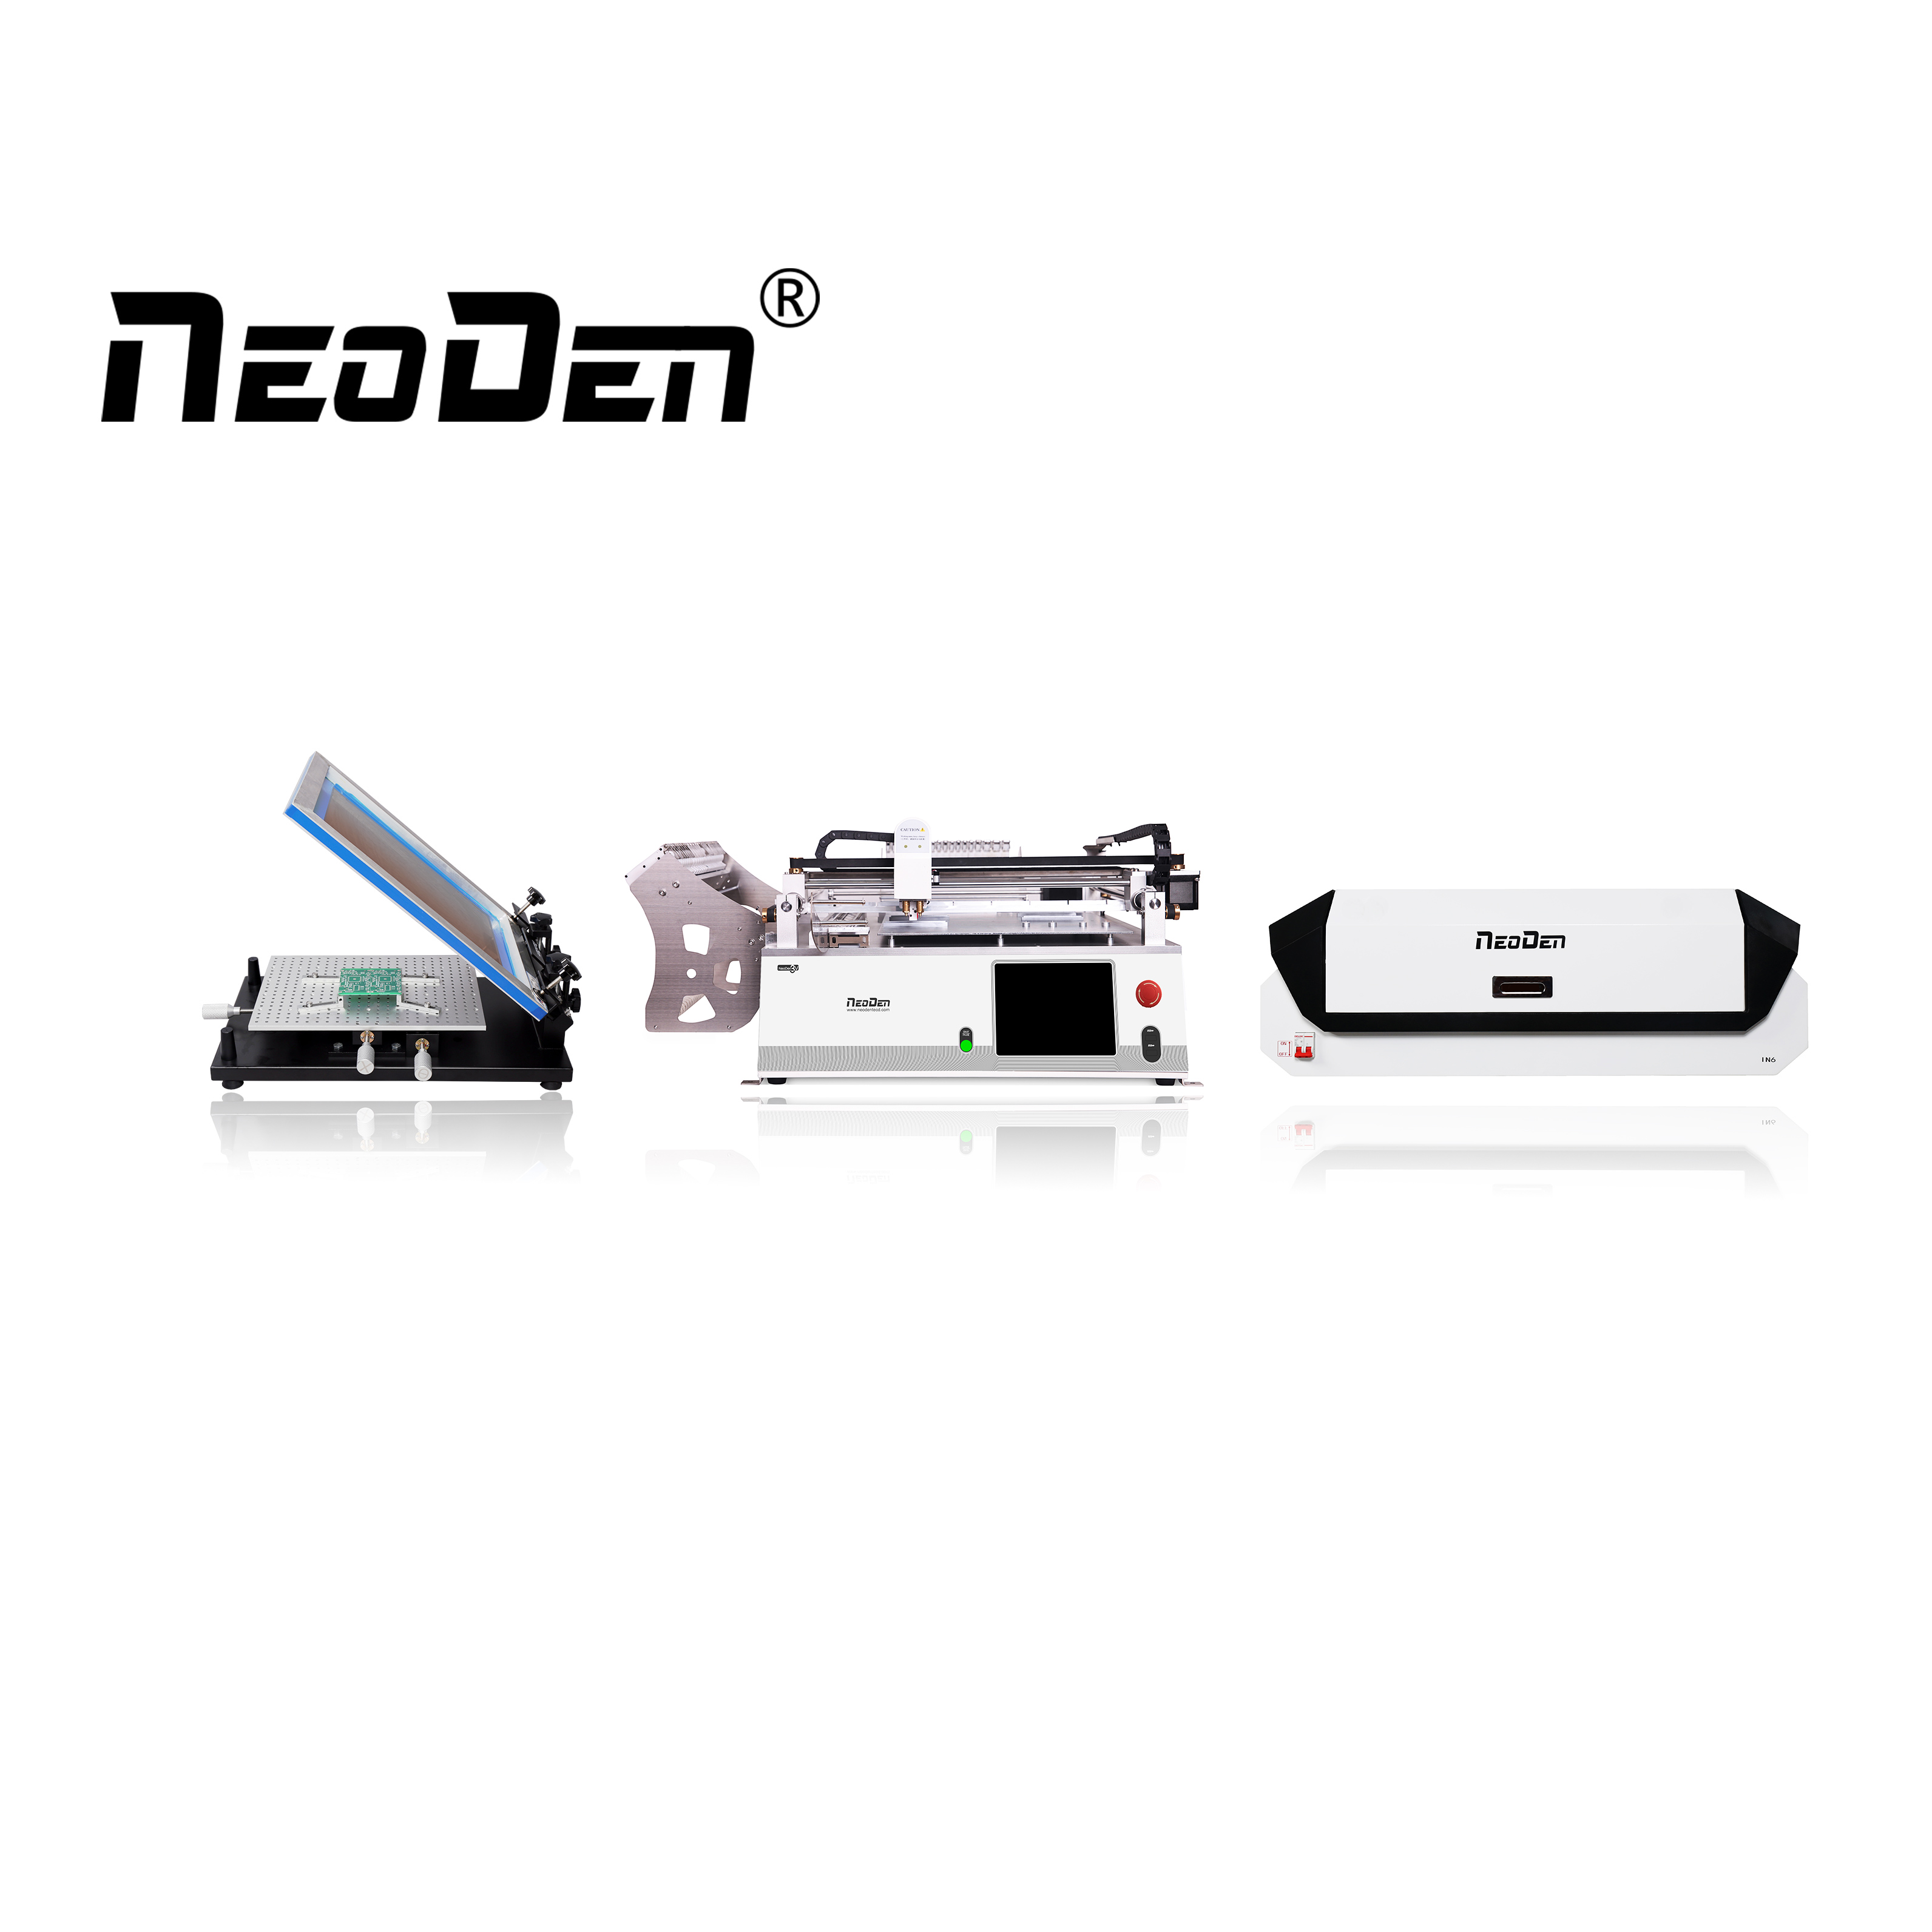 NeoDen small budget production line for start-ups